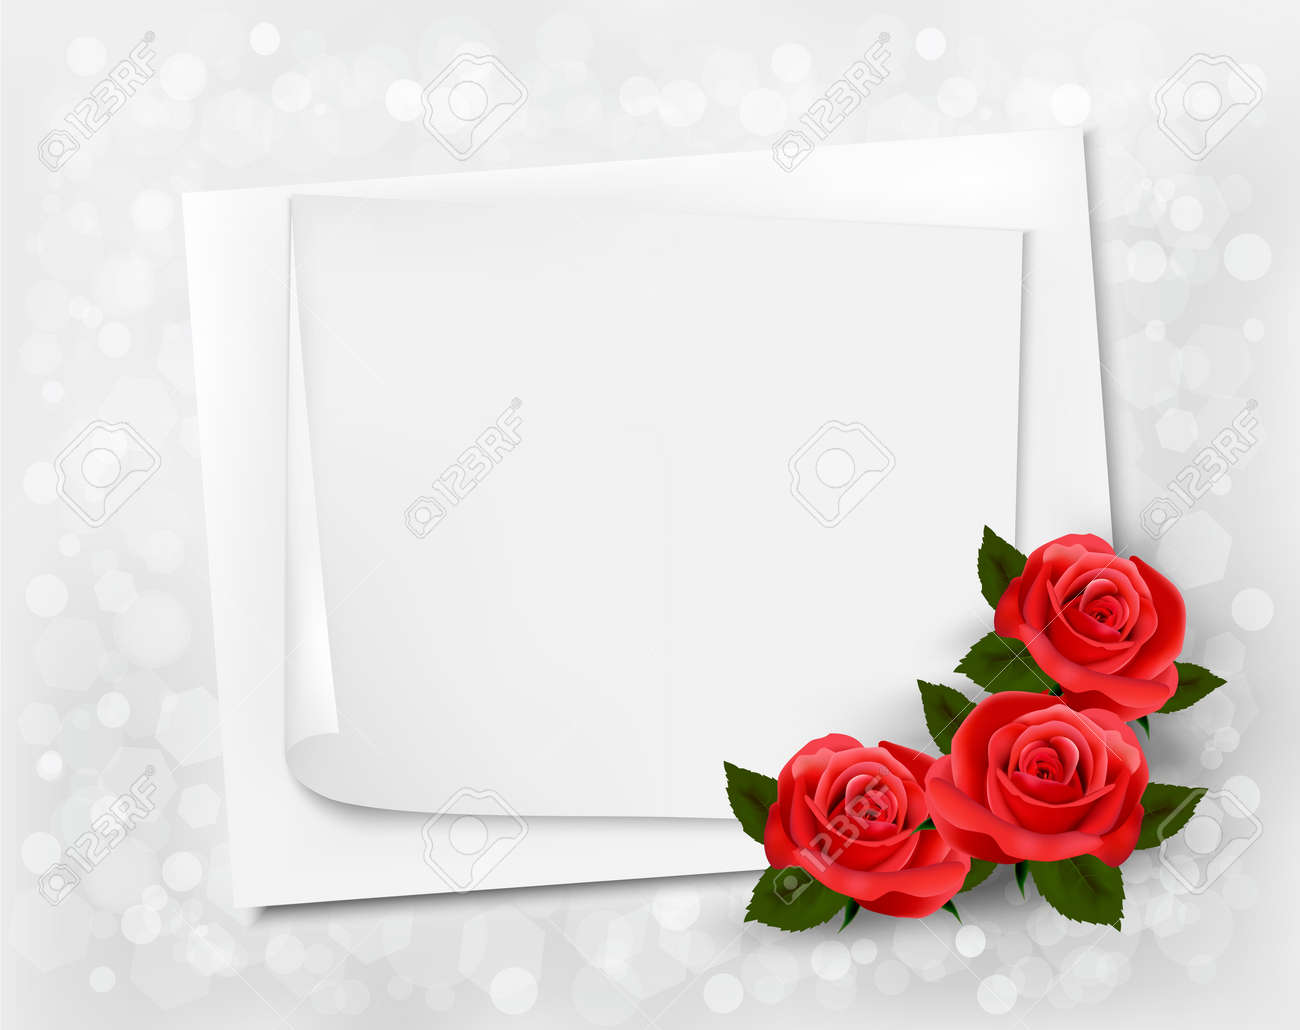 Holiday background with sheet of paper and red flowers. Valentines background. Stock Vector - 17473562